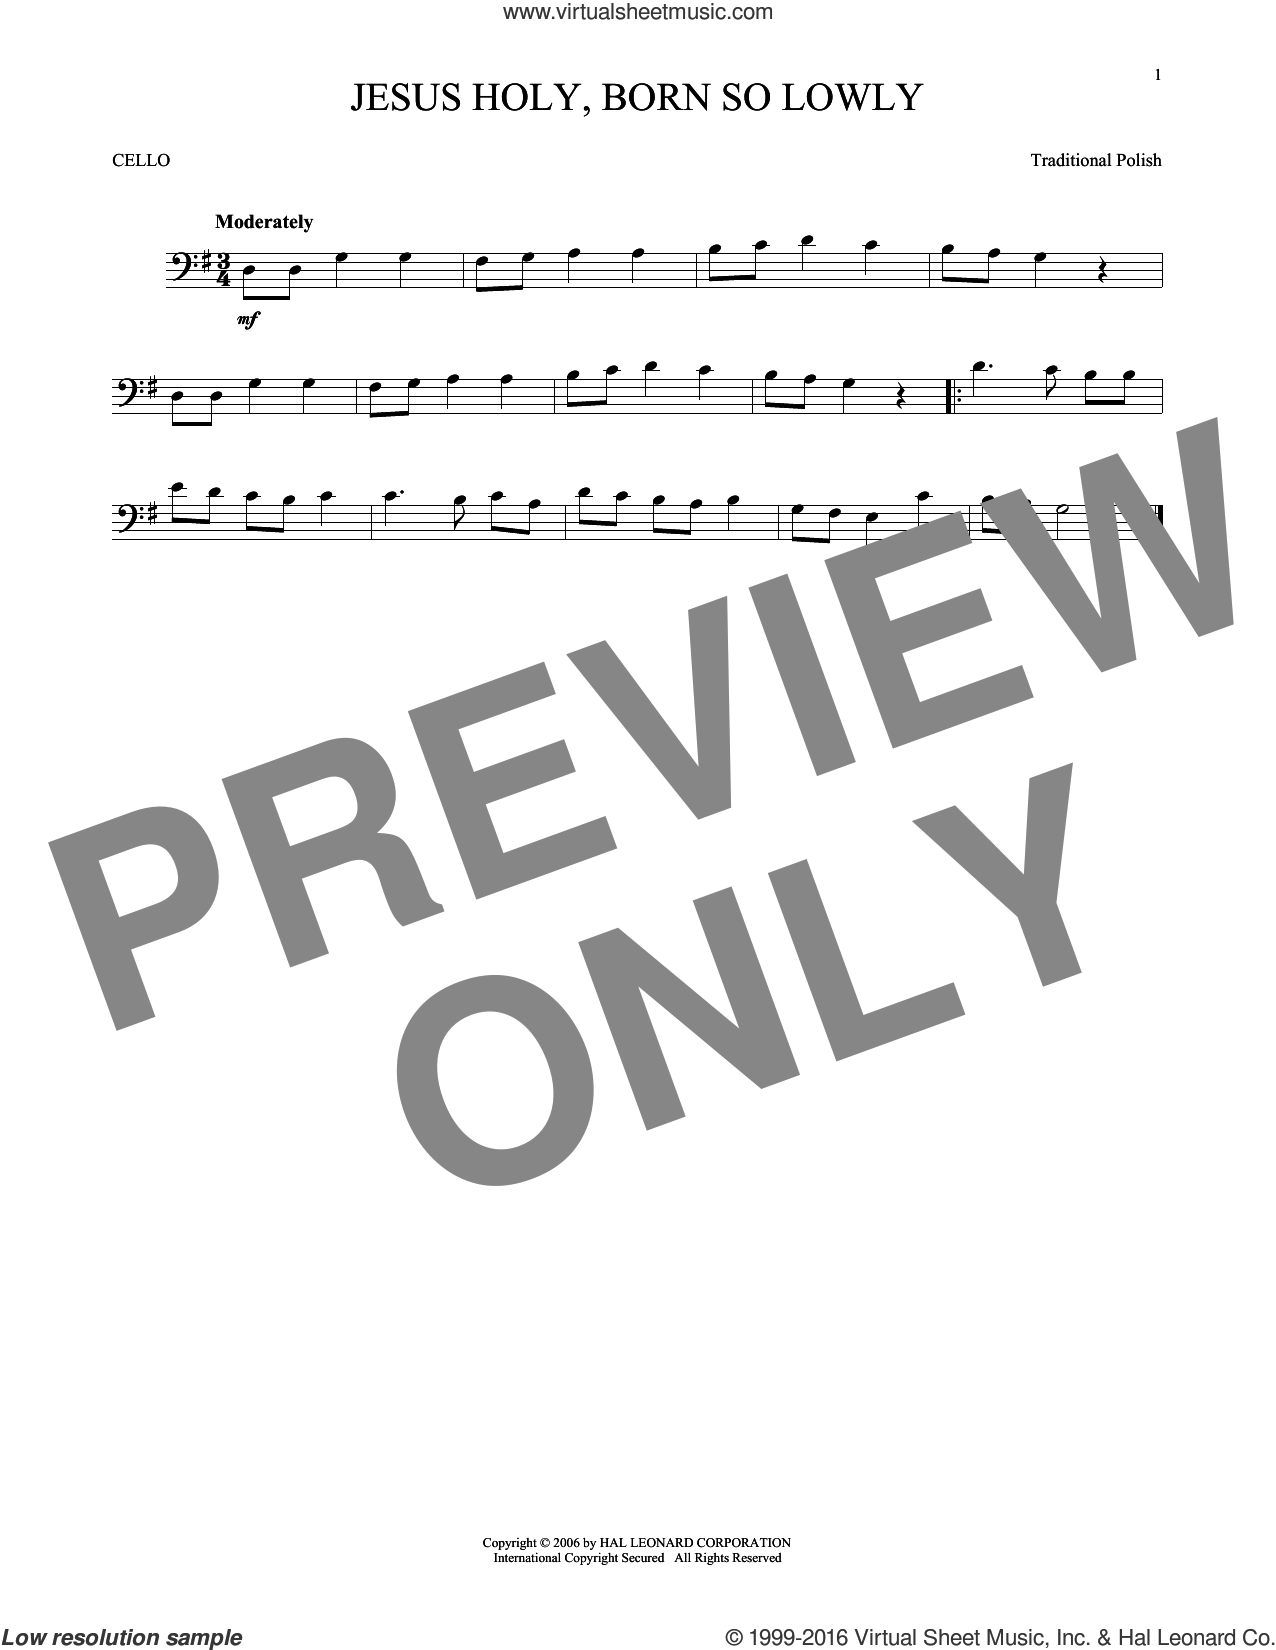 Jesus Holy, Born So Lowly sheet music for cello solo. Score Image Preview.